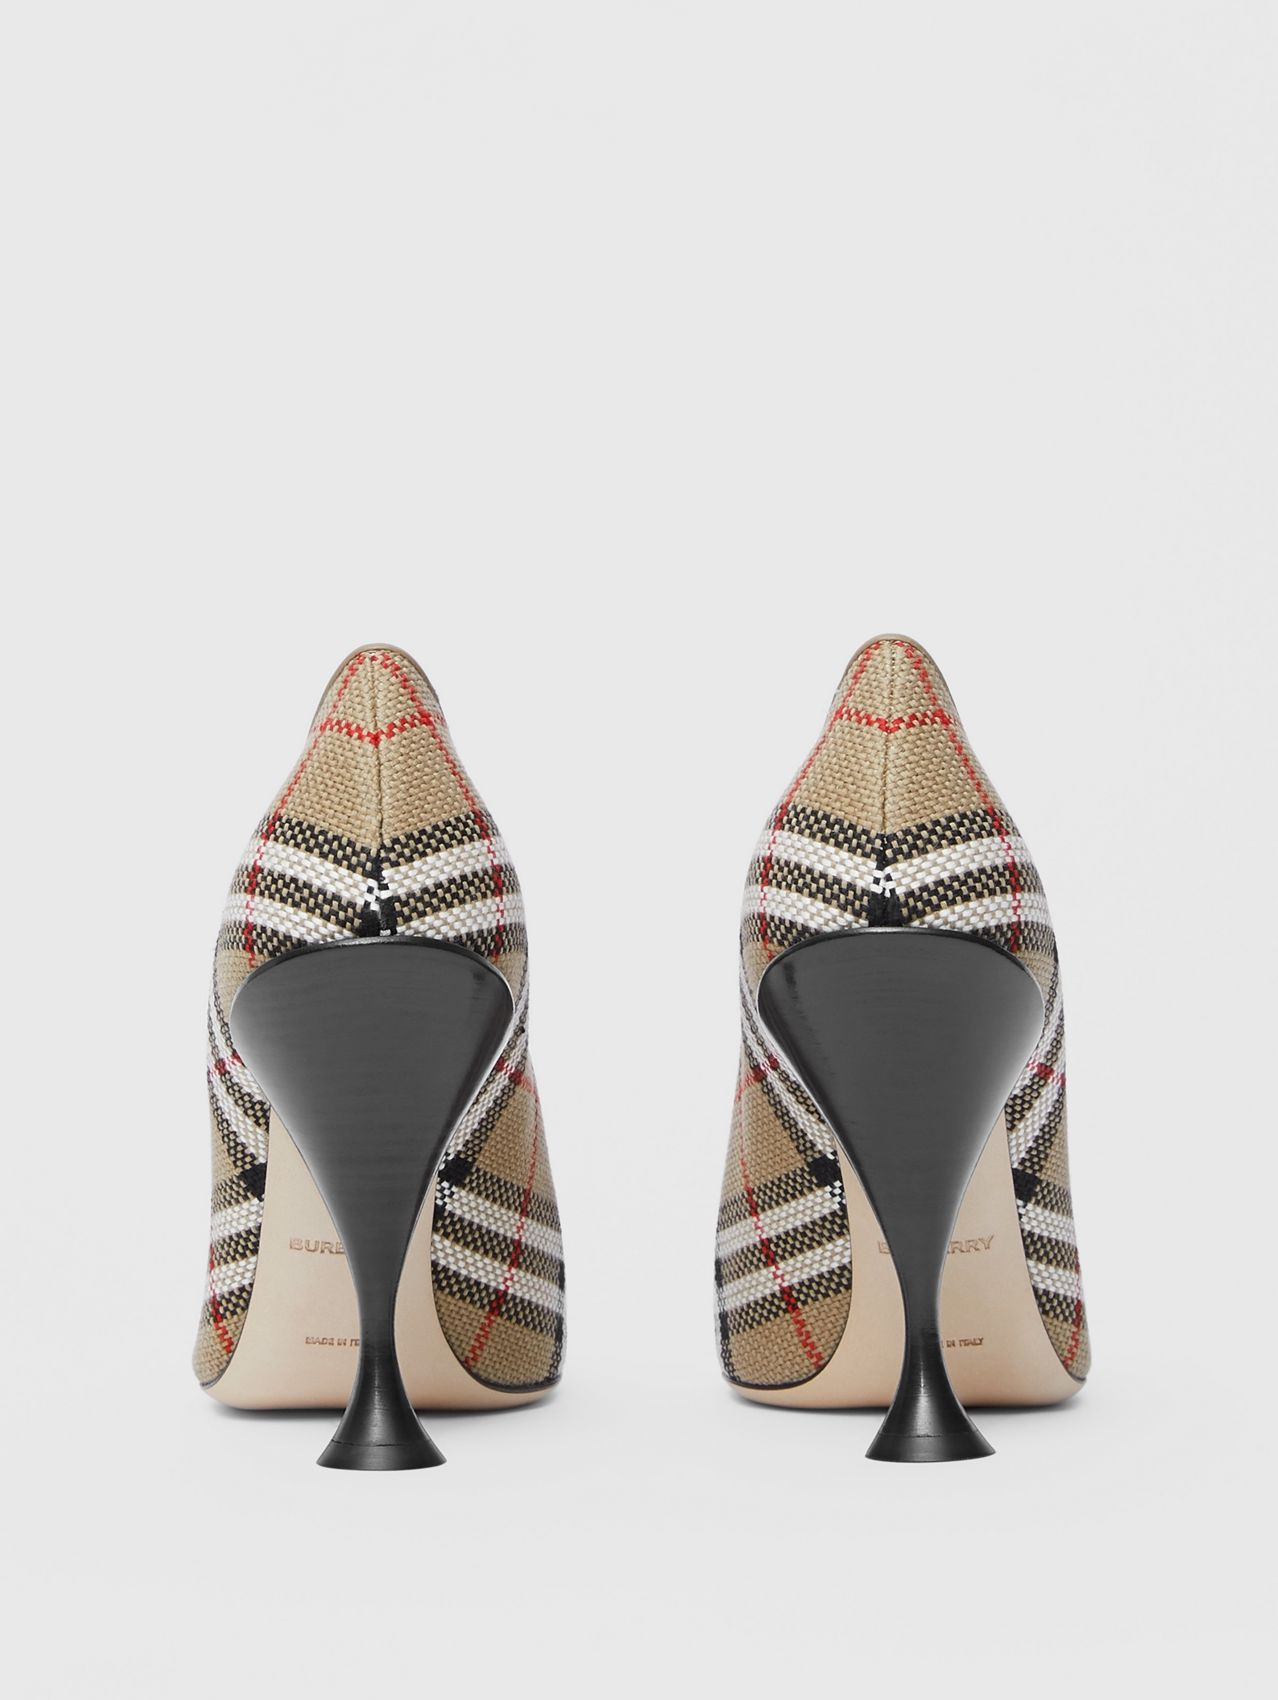 Latticed Cotton Square-toe Pumps in Archive Beige